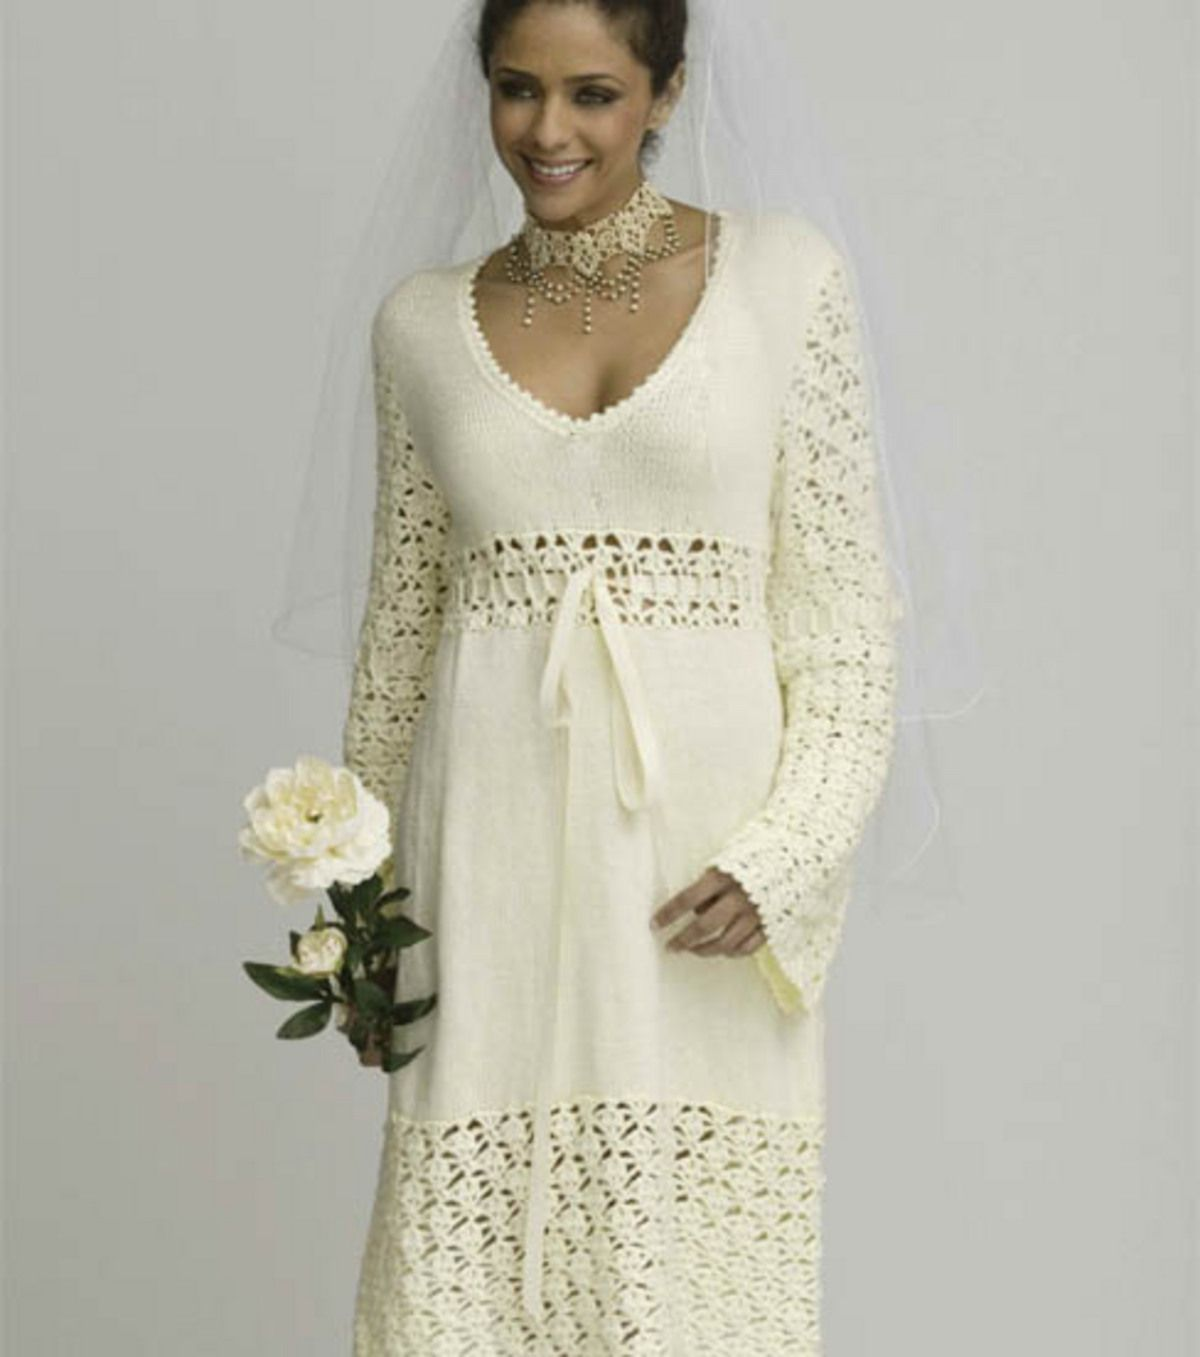 Crochet Wedding Dress Patterns And Accessories To